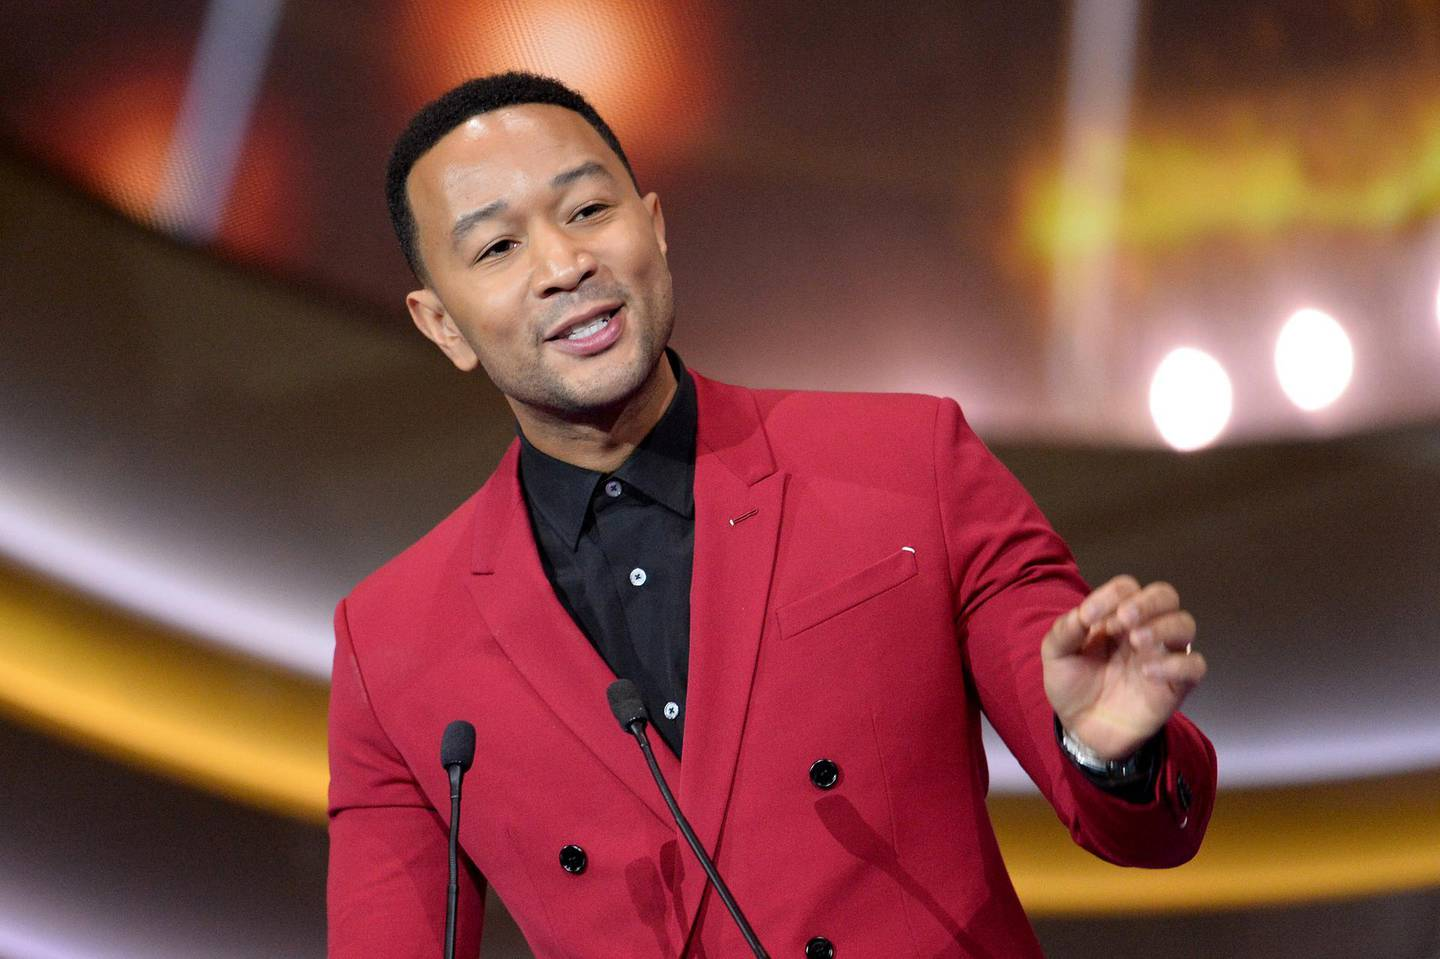 LONDON, ENGLAND - DECEMBER 13: John Legend performs at the 2019 Global Citizen Prize at the Royal Albert Hall on December 13, 2019 in London, England. (Photo by Jeff Spicer/Getty Images for Global Citizen)